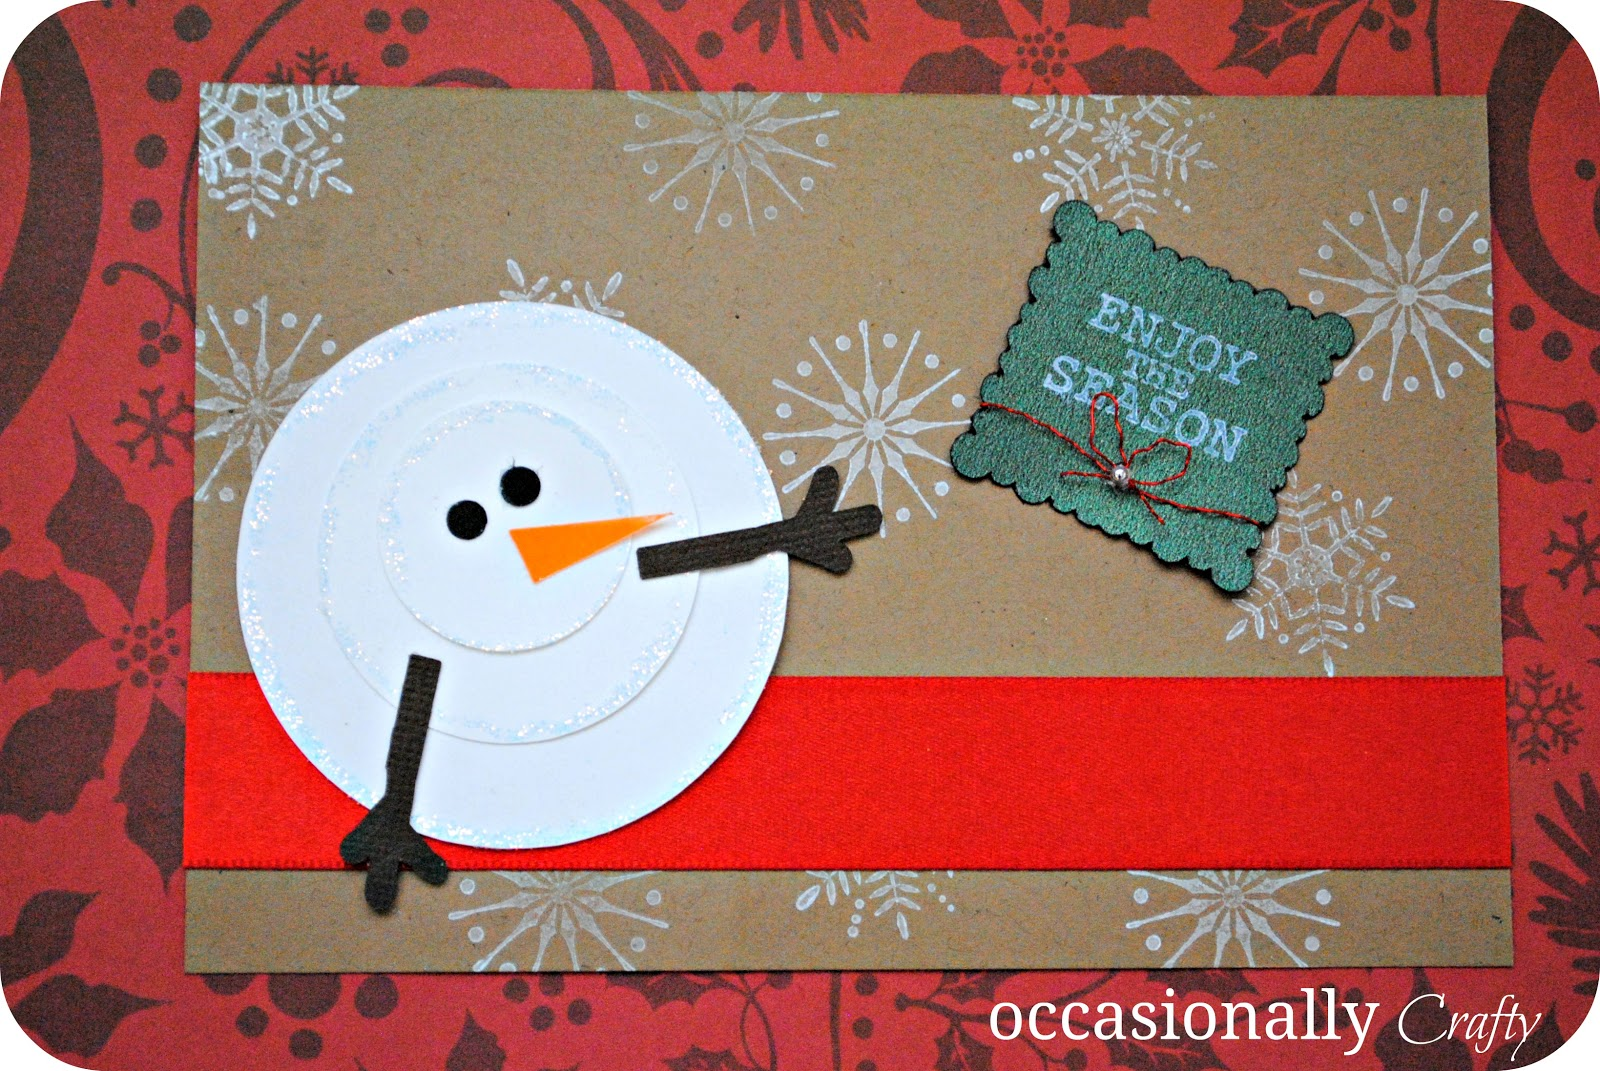 Handmade Christmas  Occasionally Crafty: A Handmade Christmas